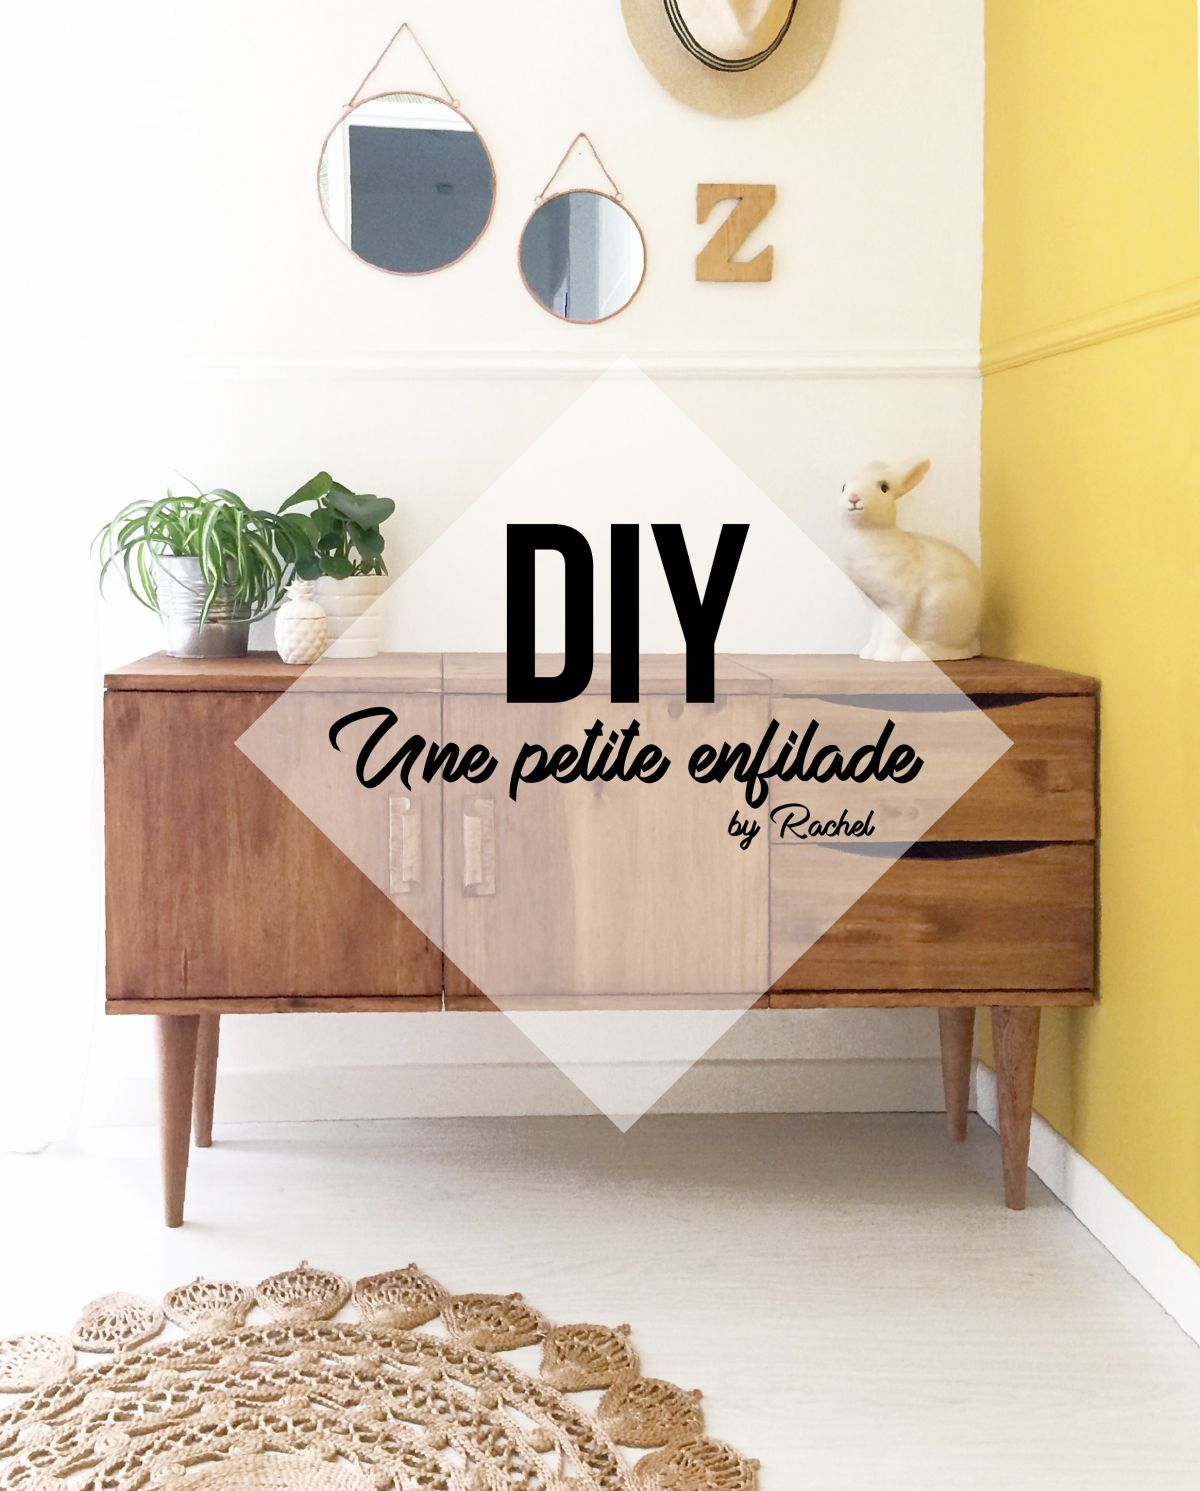 Pin by anne lise p on creations id in pinterest diy diy